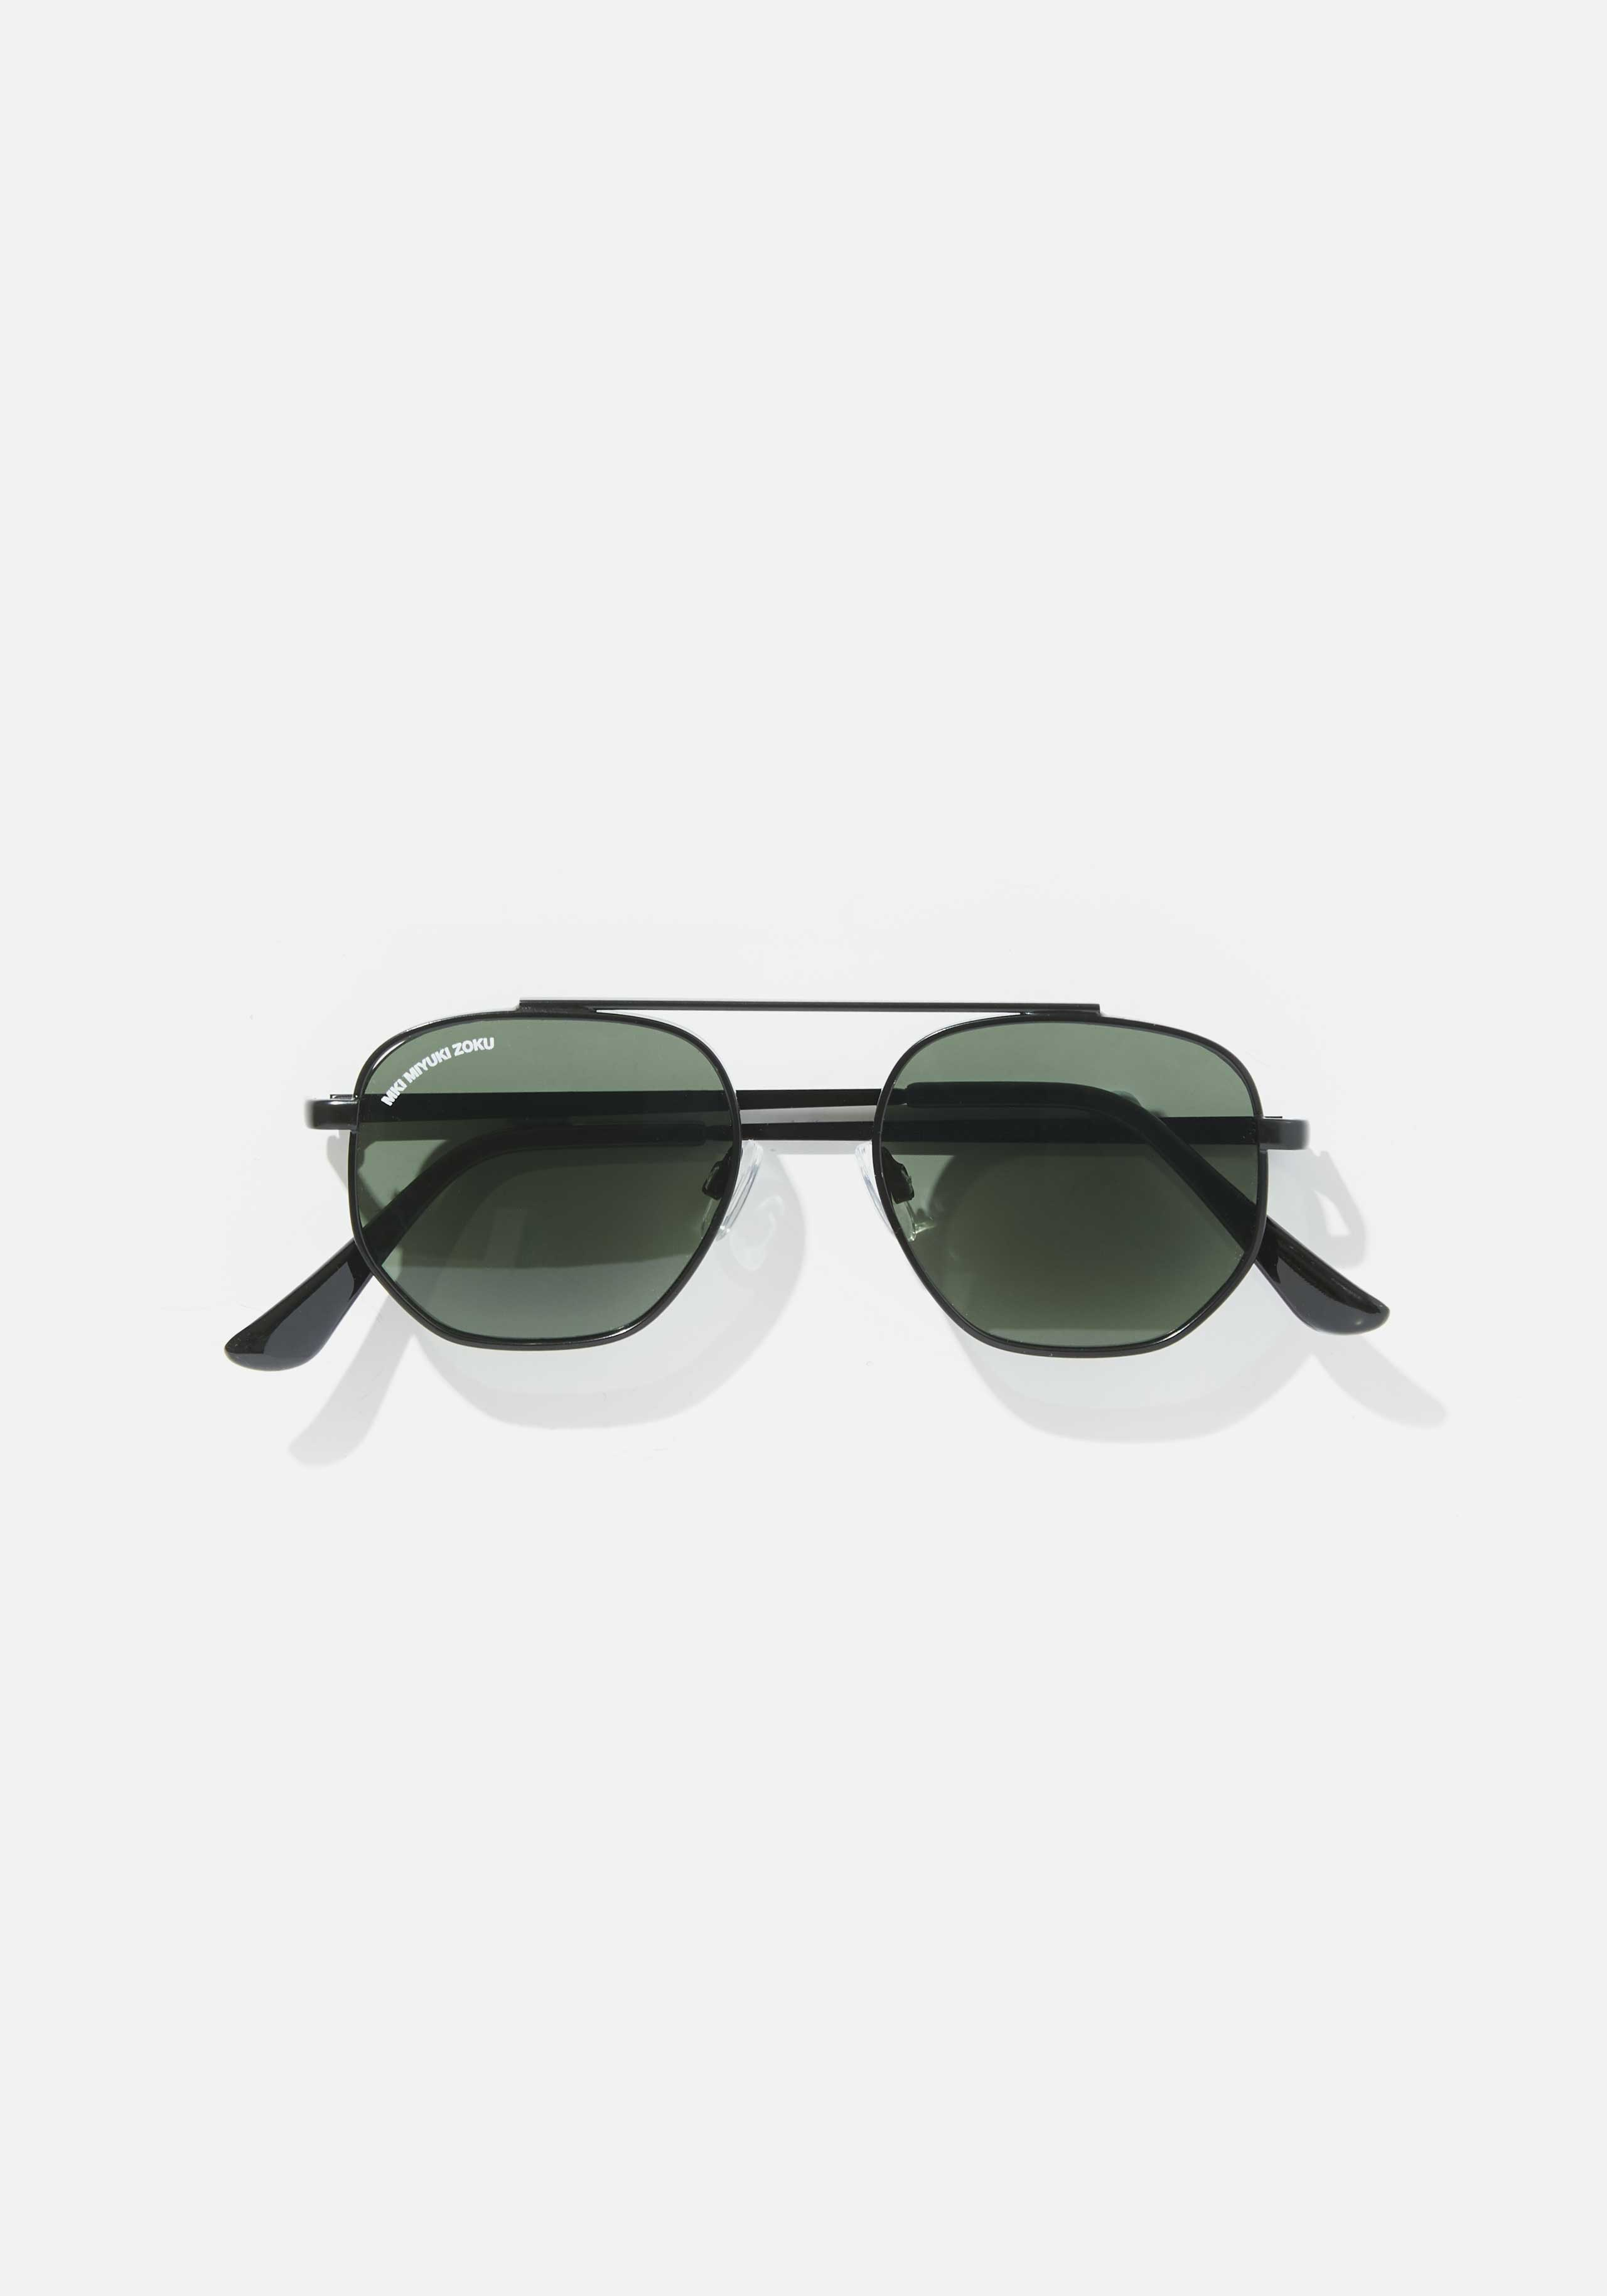 mki metal hex sunglasses 1